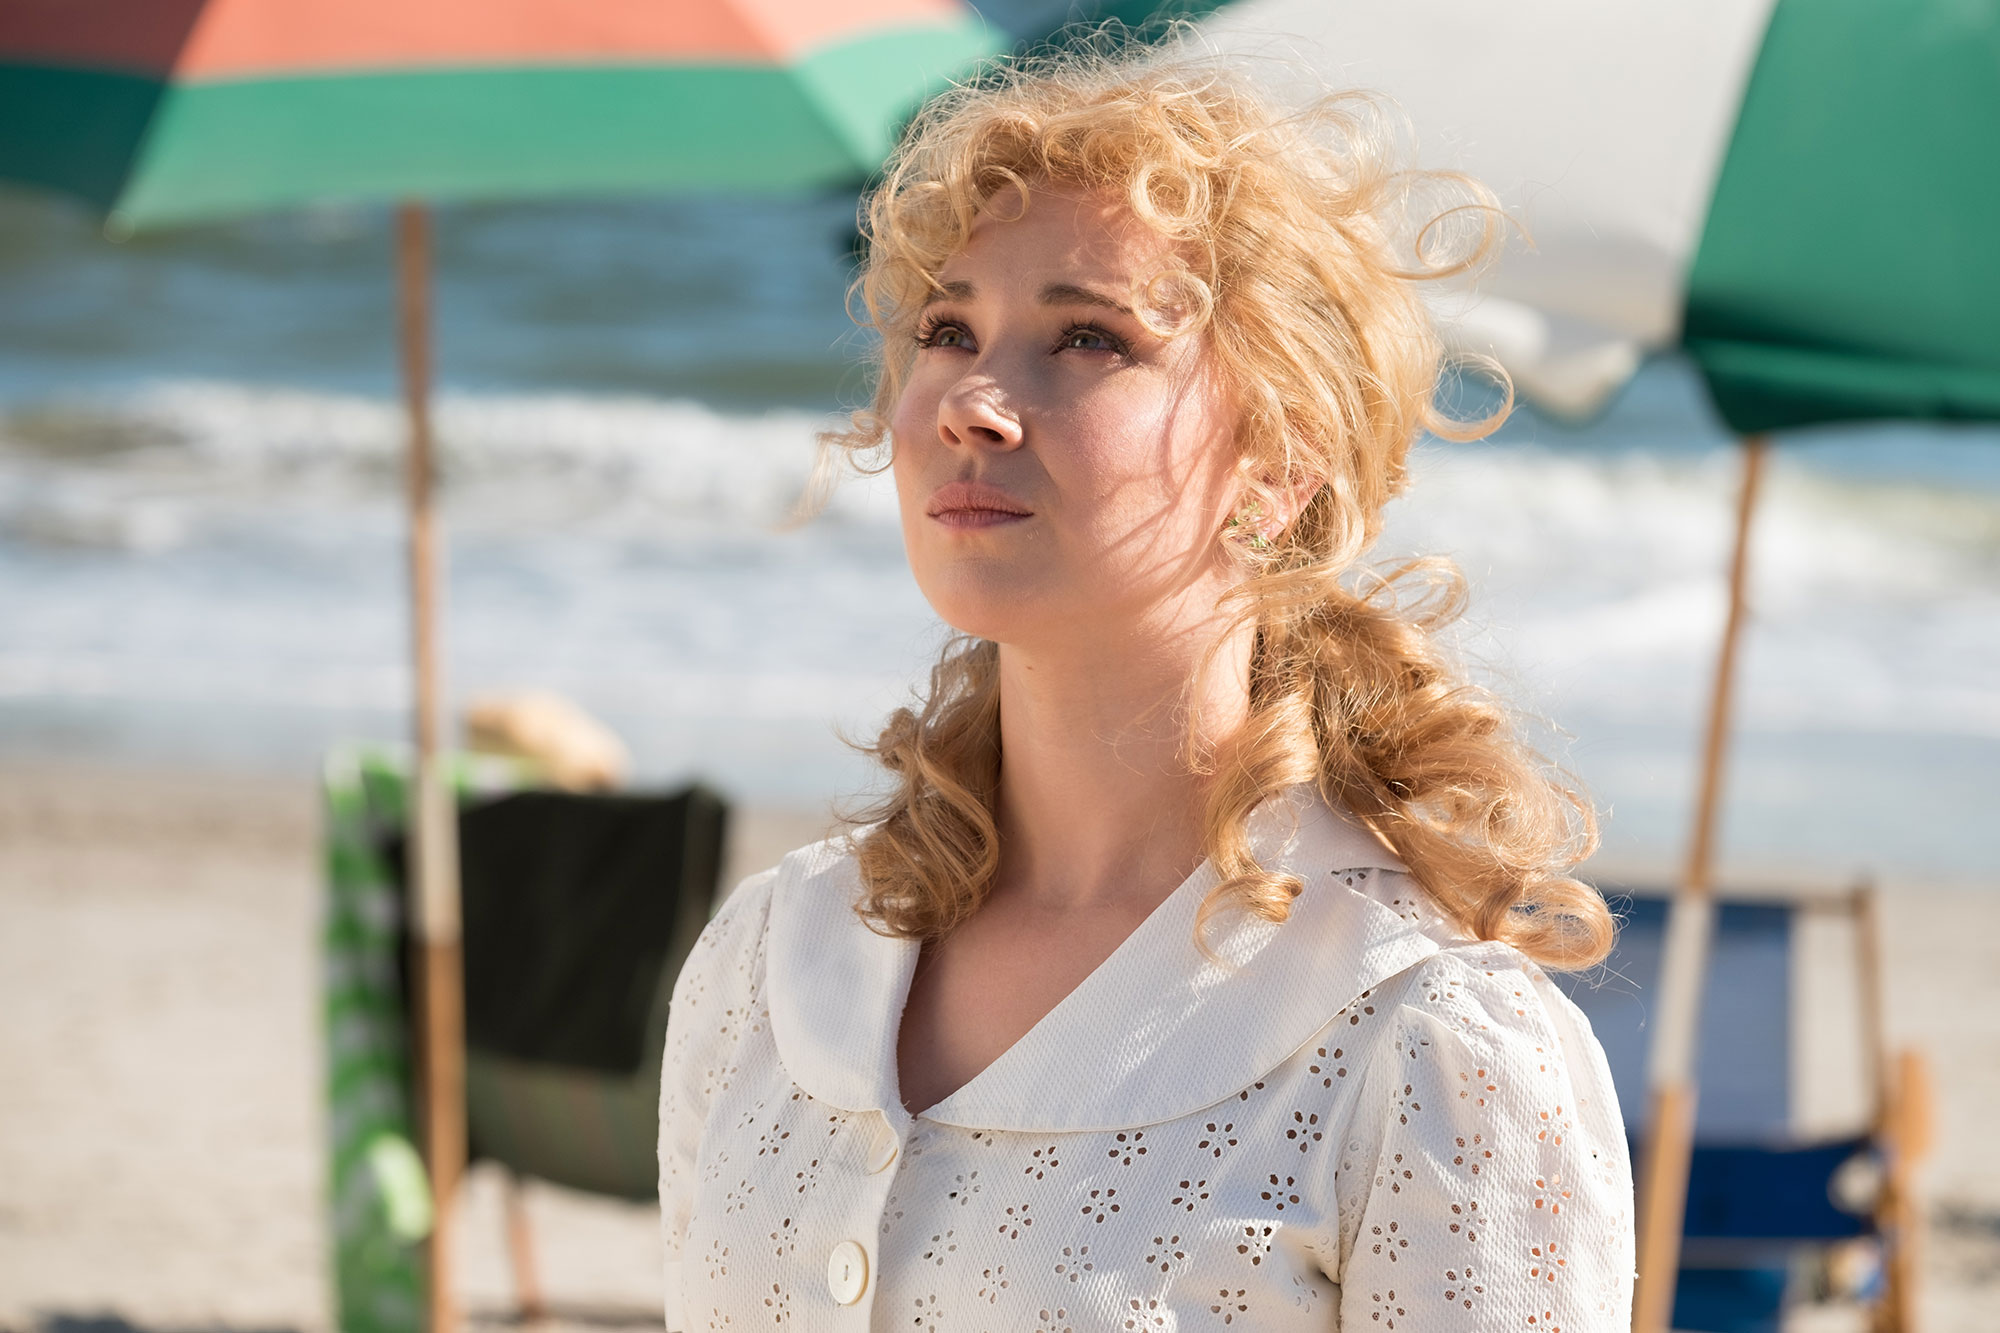 Wonder-Wheel-Juno-Temple-2018